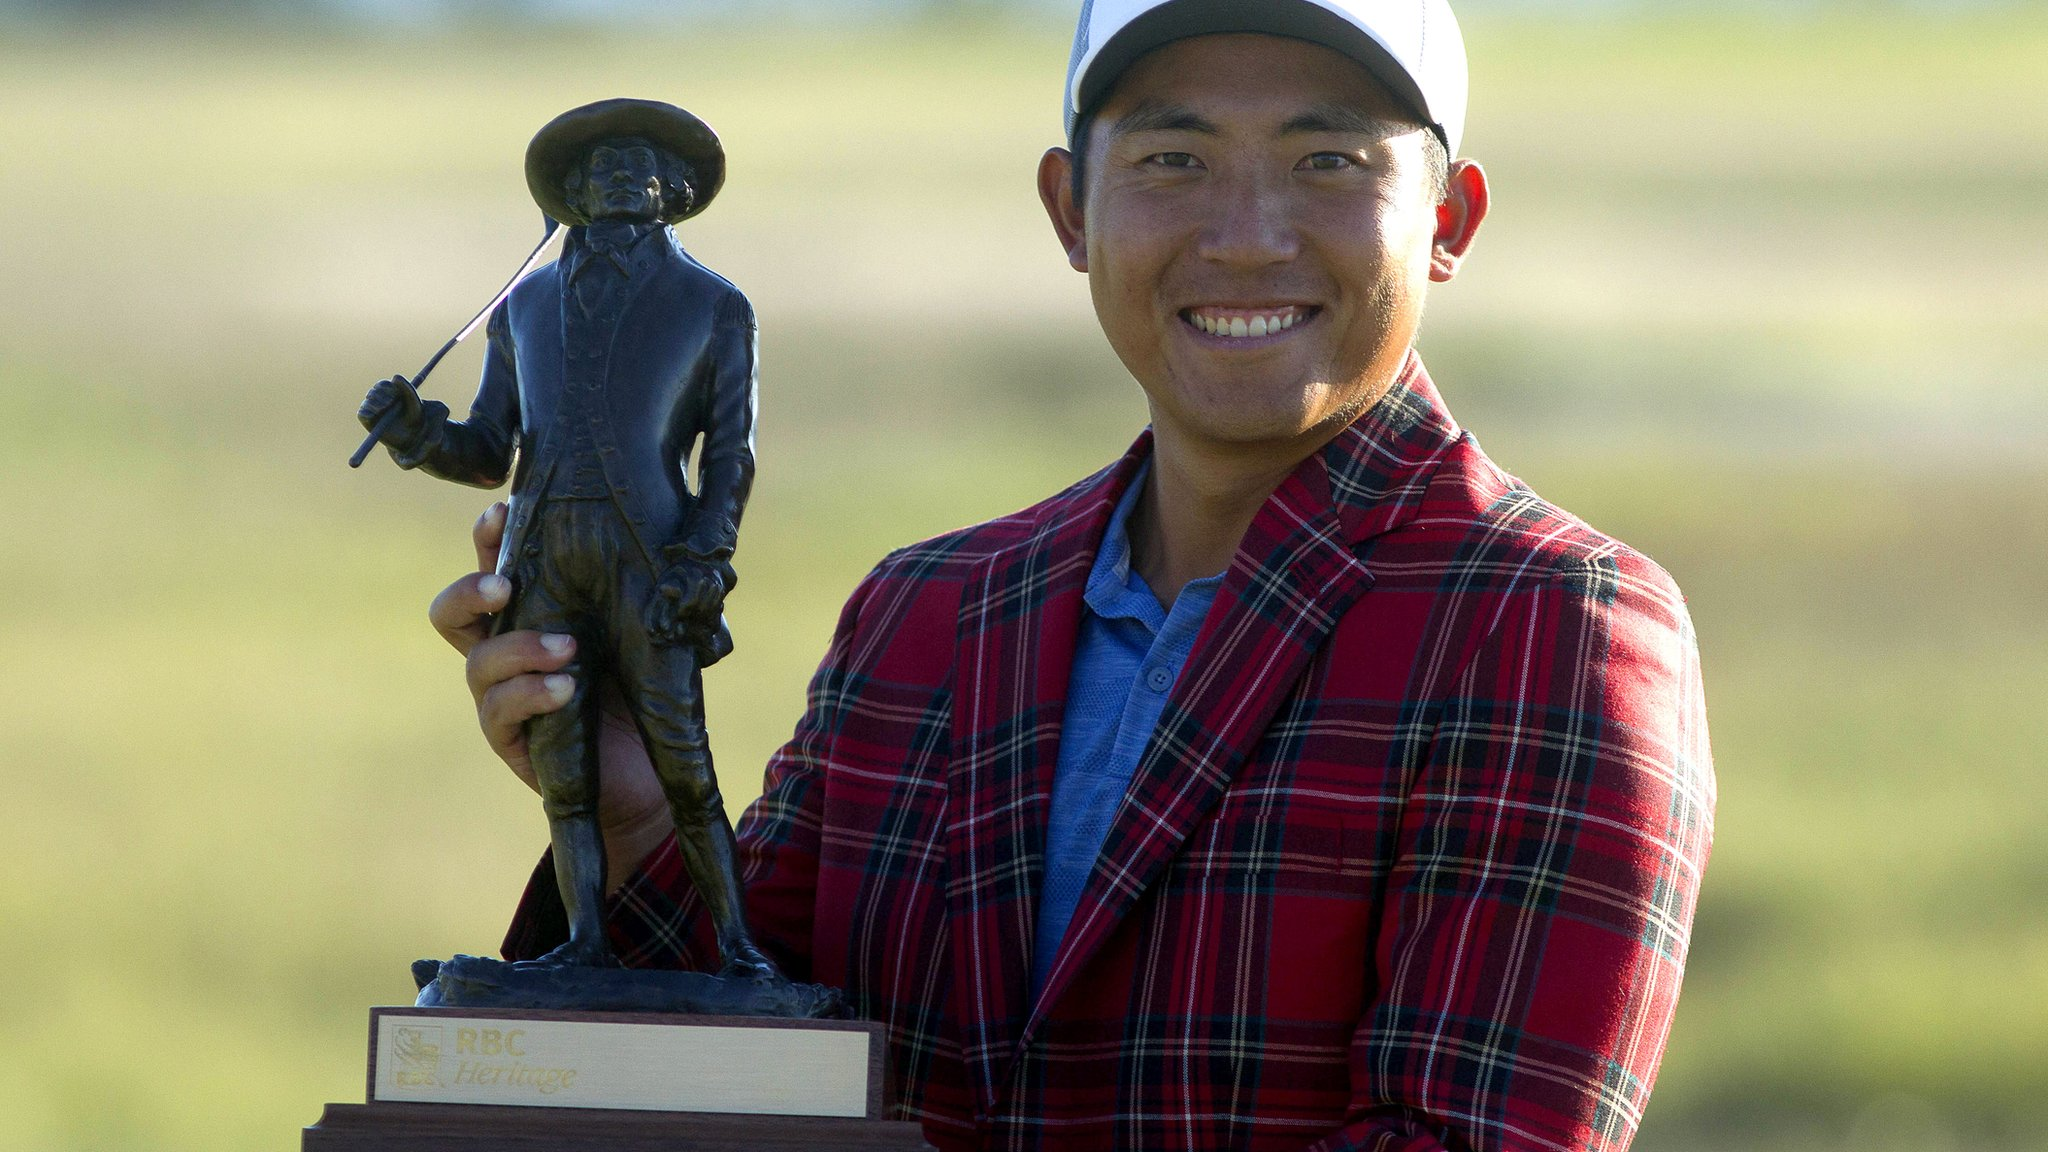 RBC Heritage: CT Pan wins first PGA Tour title with one-shot win